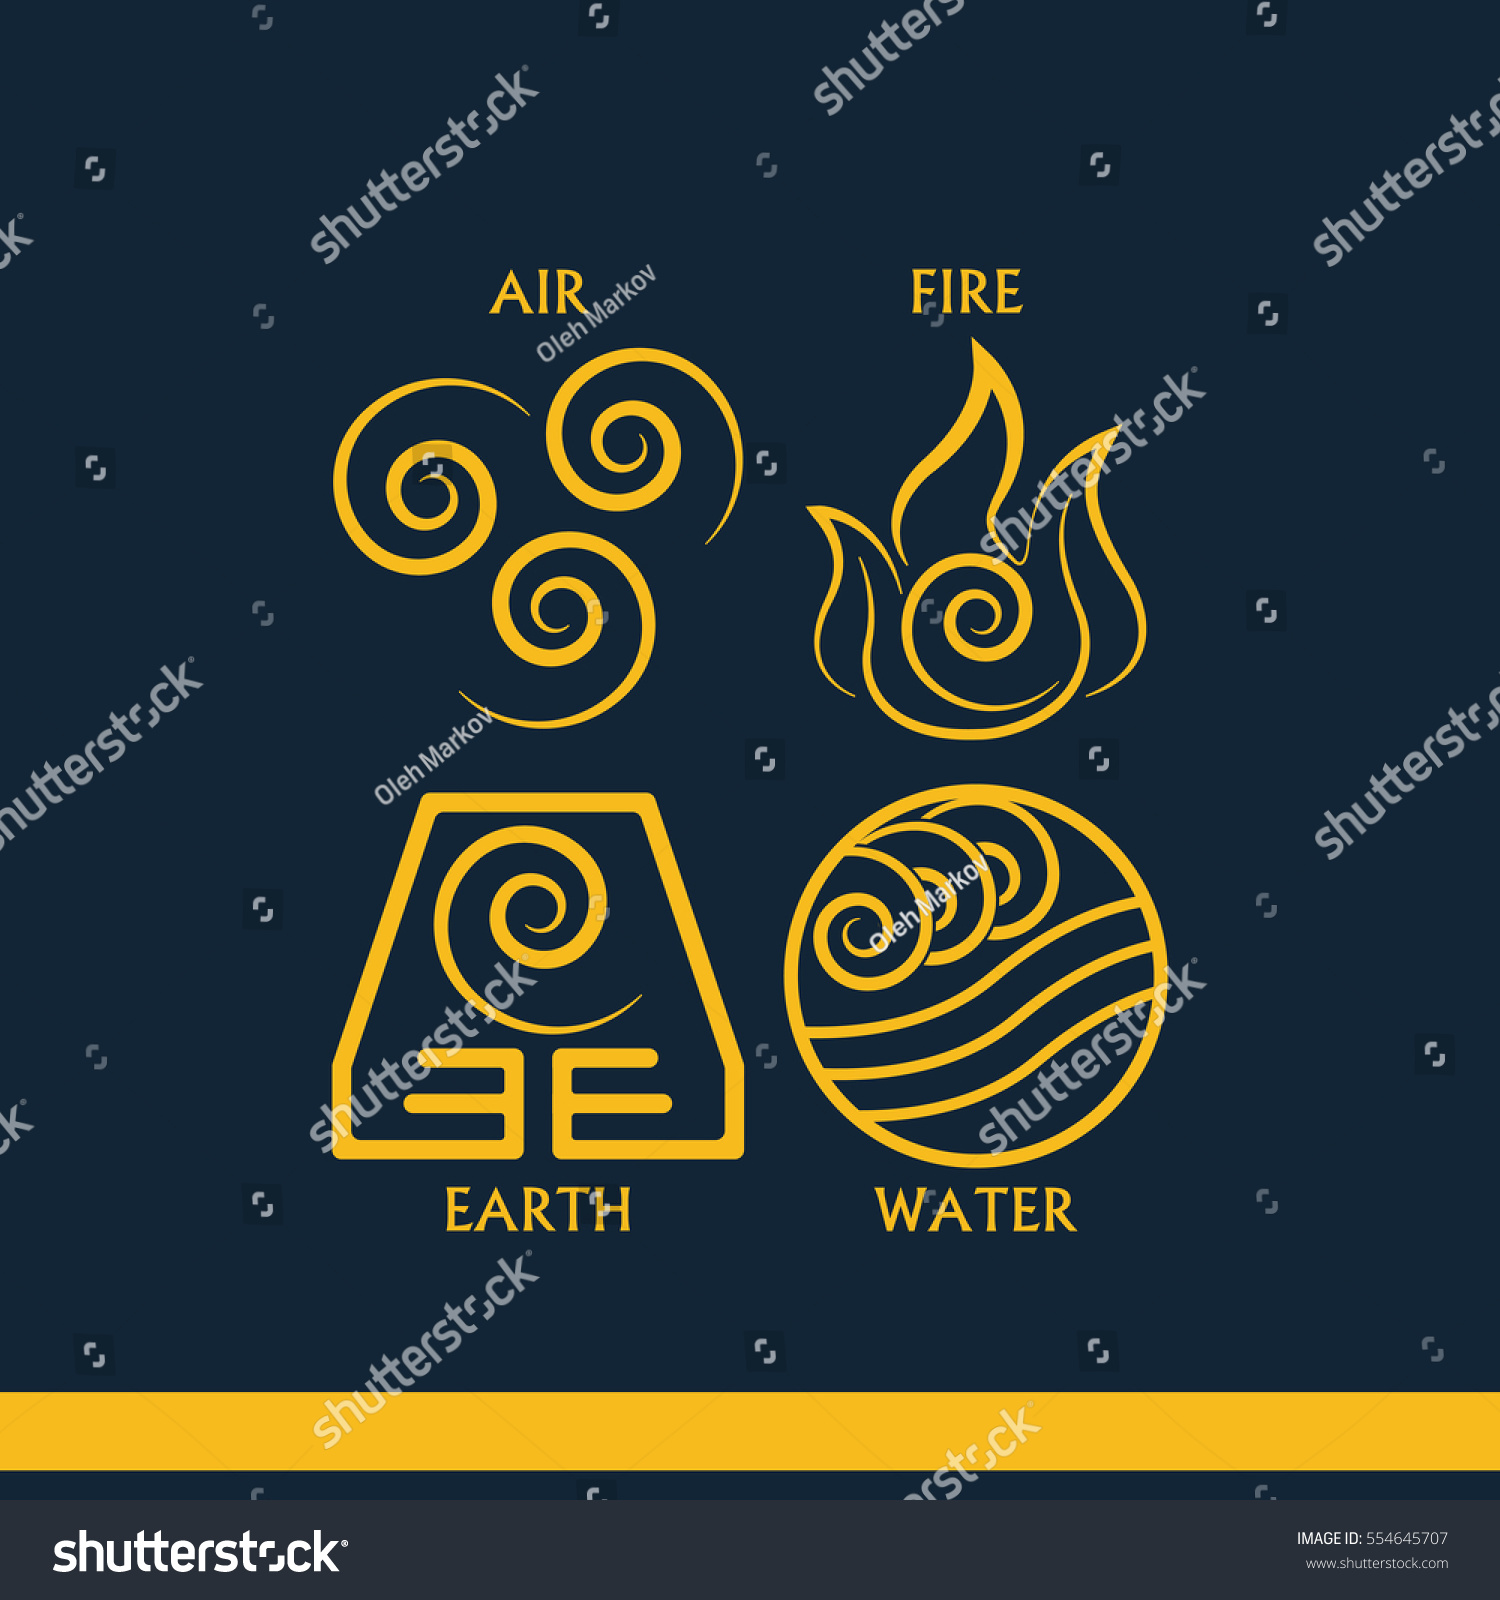 Ancient symbols four elements subscribe stock illustration ancient symbols of four elements with subscribe buycottarizona